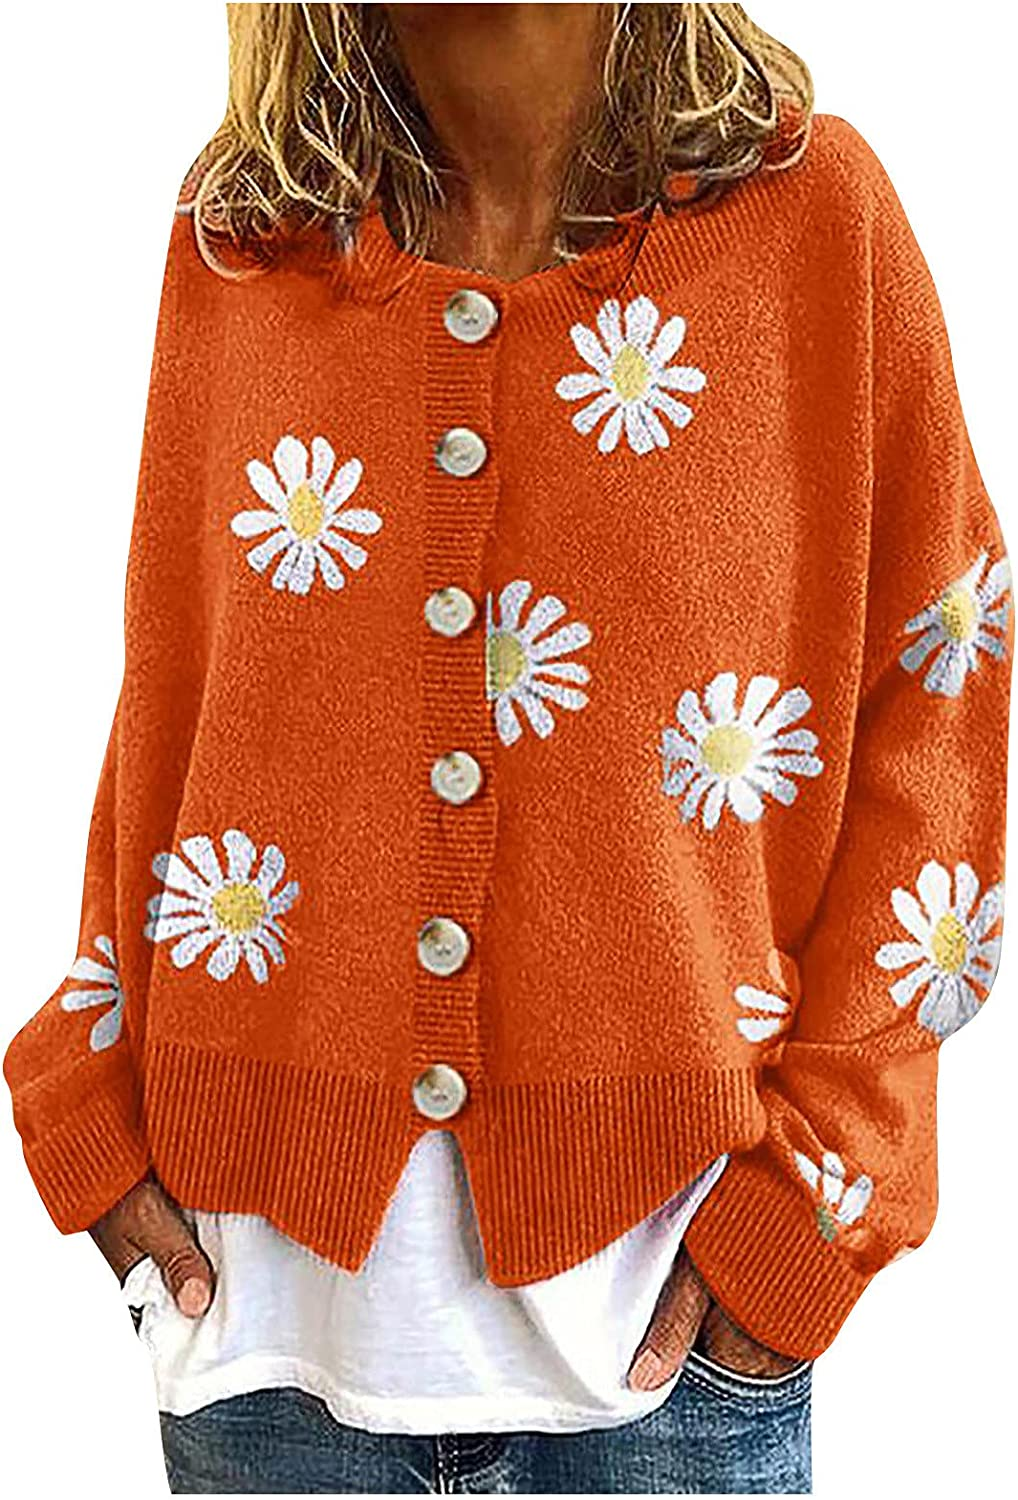 Women Coat Cardigans Daisy Printing Long Sleeve O-Neck Cropped Short Sweater Top Casual Loose Button y2k Knit Sweaters